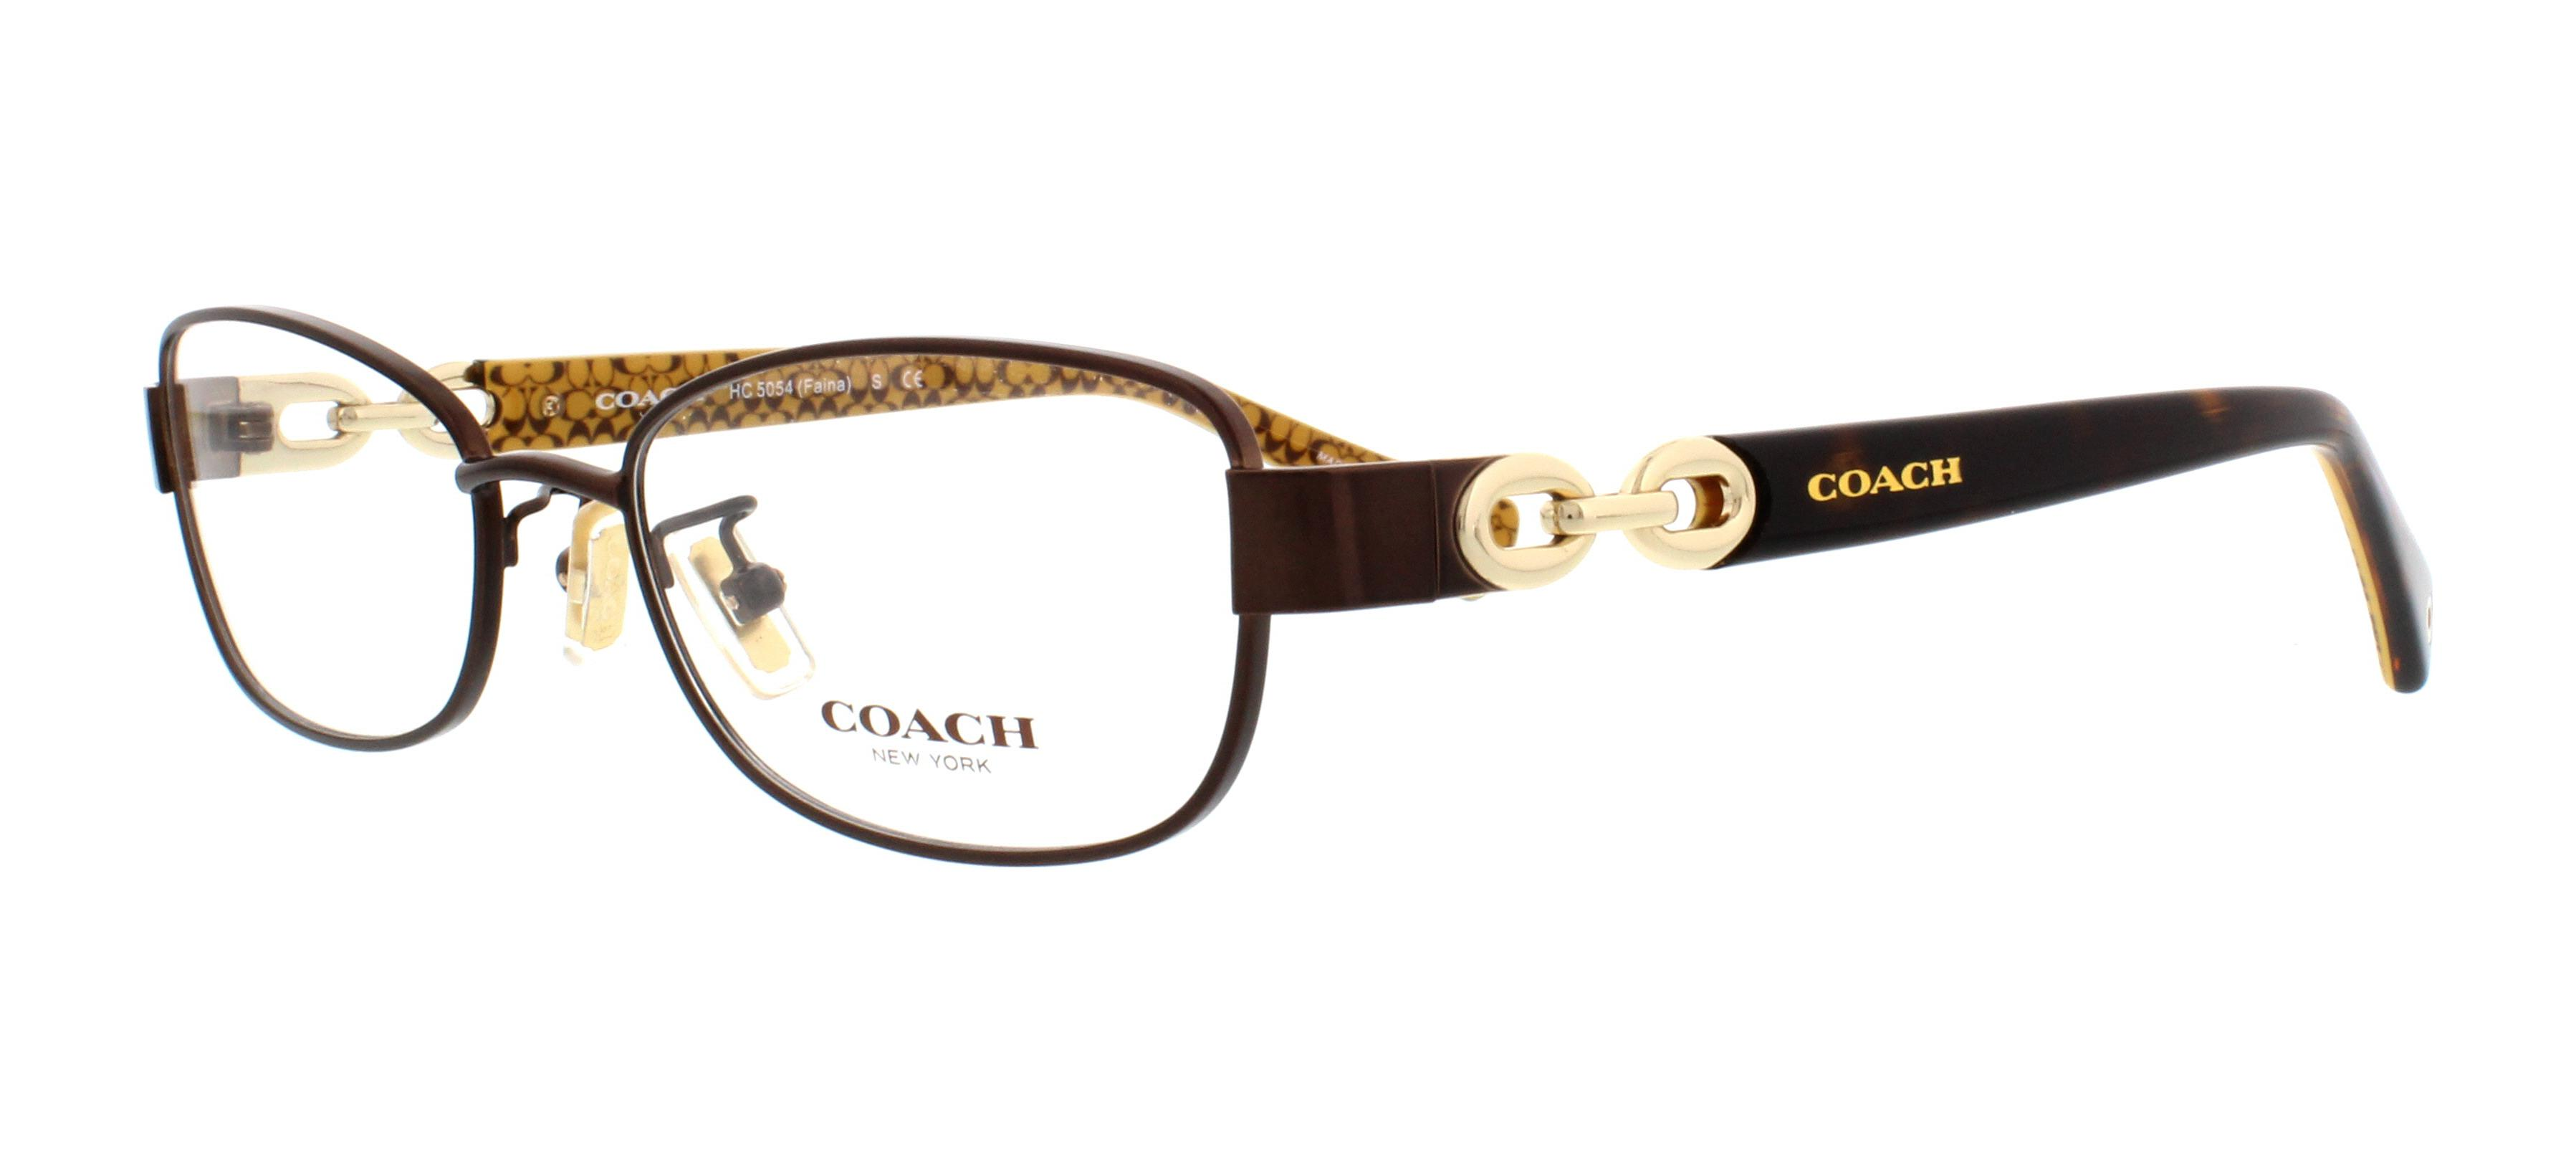 0d52068c2a ... spain coach eyeglasses hc5054 faina 9187 satin brown tortoise gold 51mm  2d613 b6fd7